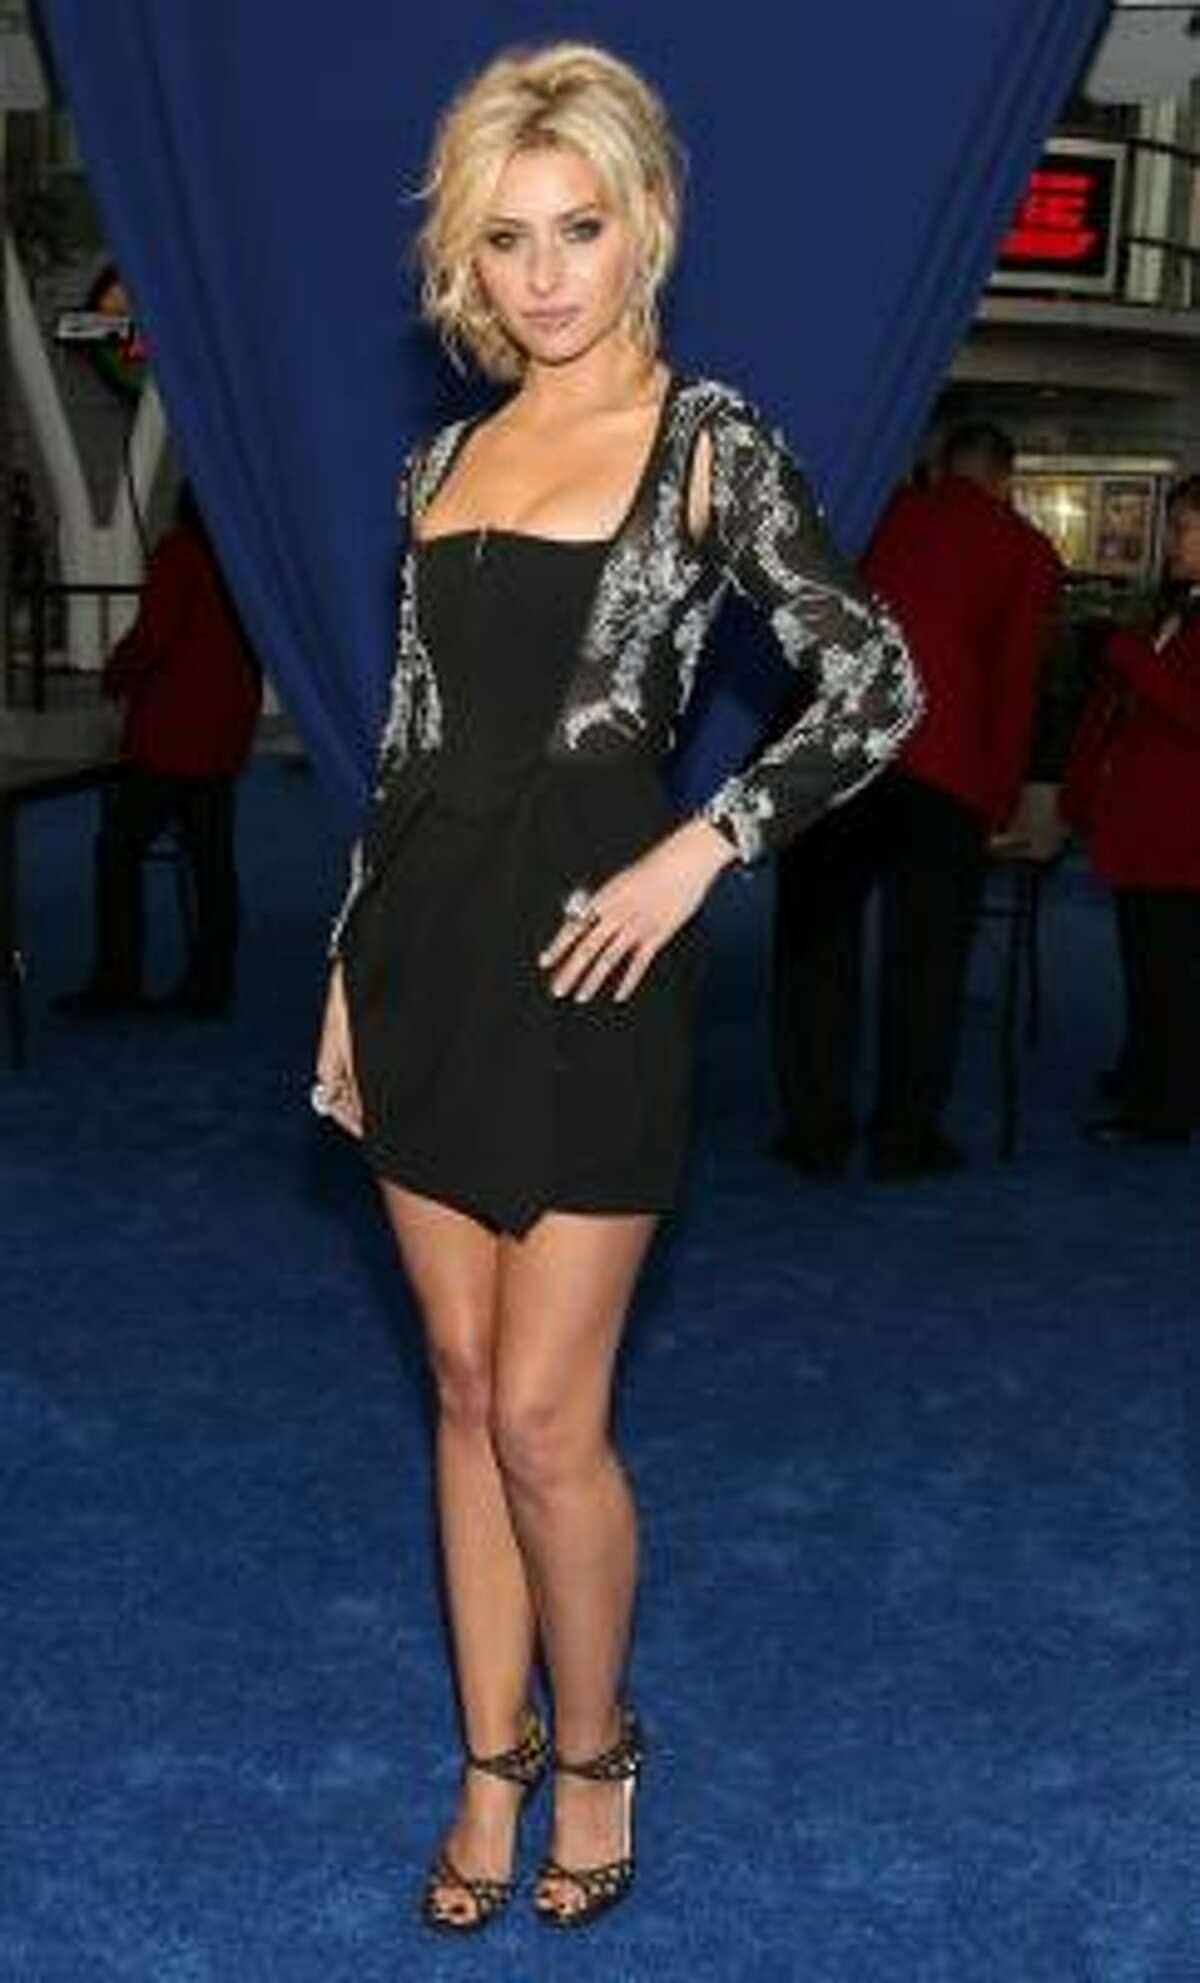 Aly Michalka. A sequined dress with an even more sequined bolero? Think knit from the '70s. Yuck!